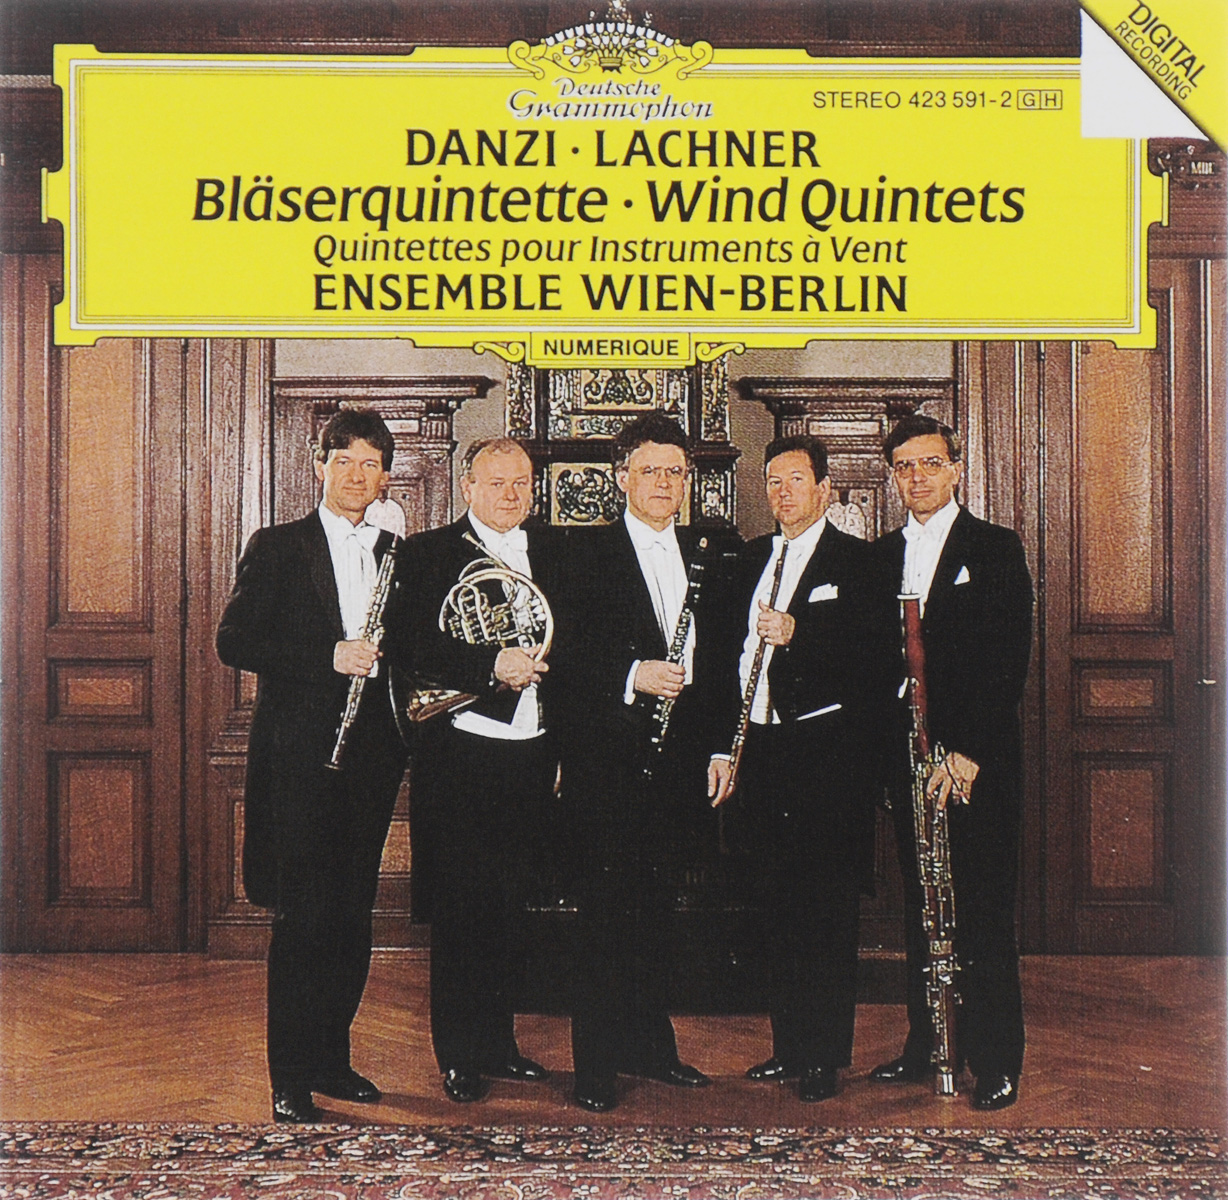 Ensemble Wien-Berlin Ensemble Wien-Berlin. Danzi / Lachner. Blaserquintette халат домашний five wien home five wien home mp002xm23qrx